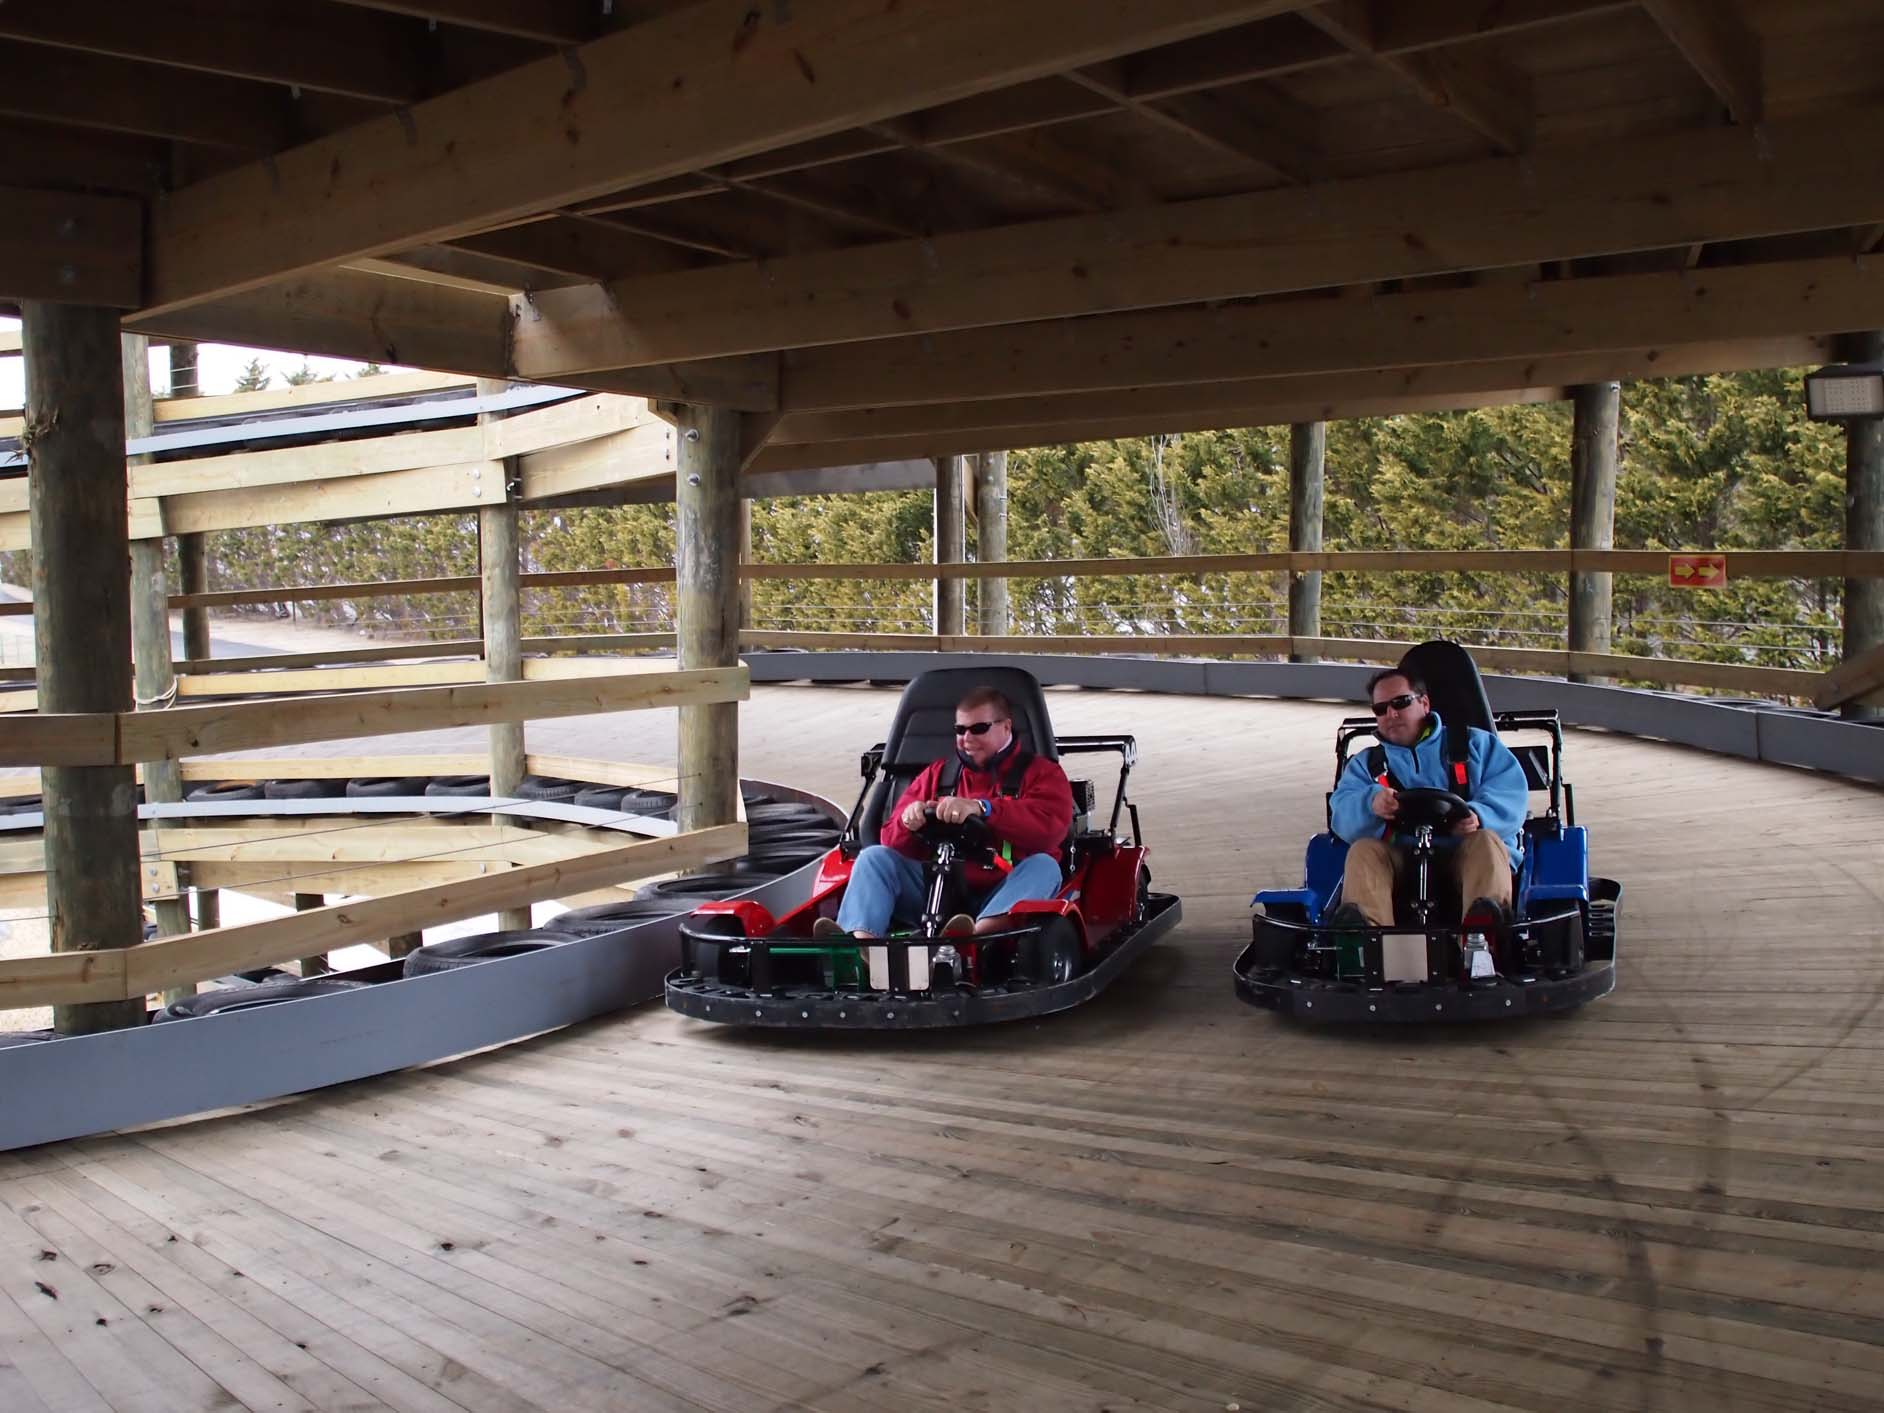 Jolly Roger debuts elevated go-kart track at 32nd St.